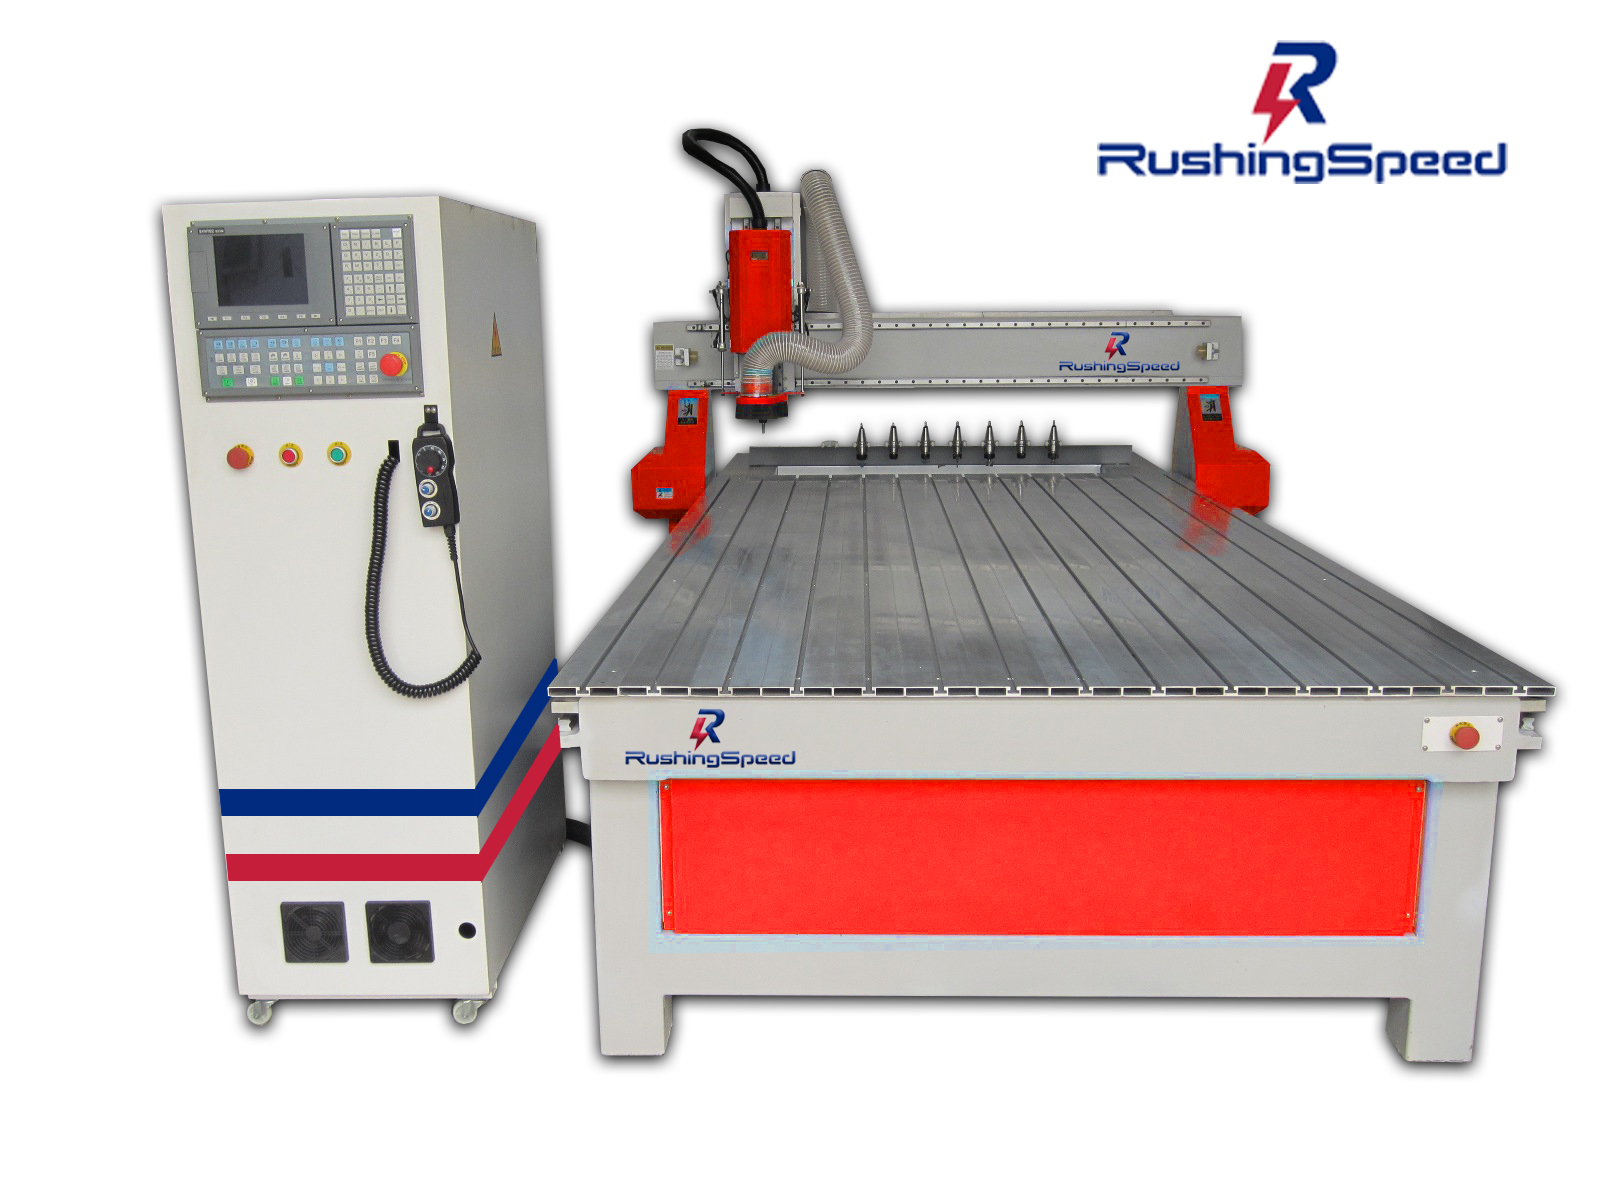 CNC WoodWorking Router Machine RSN-3000L